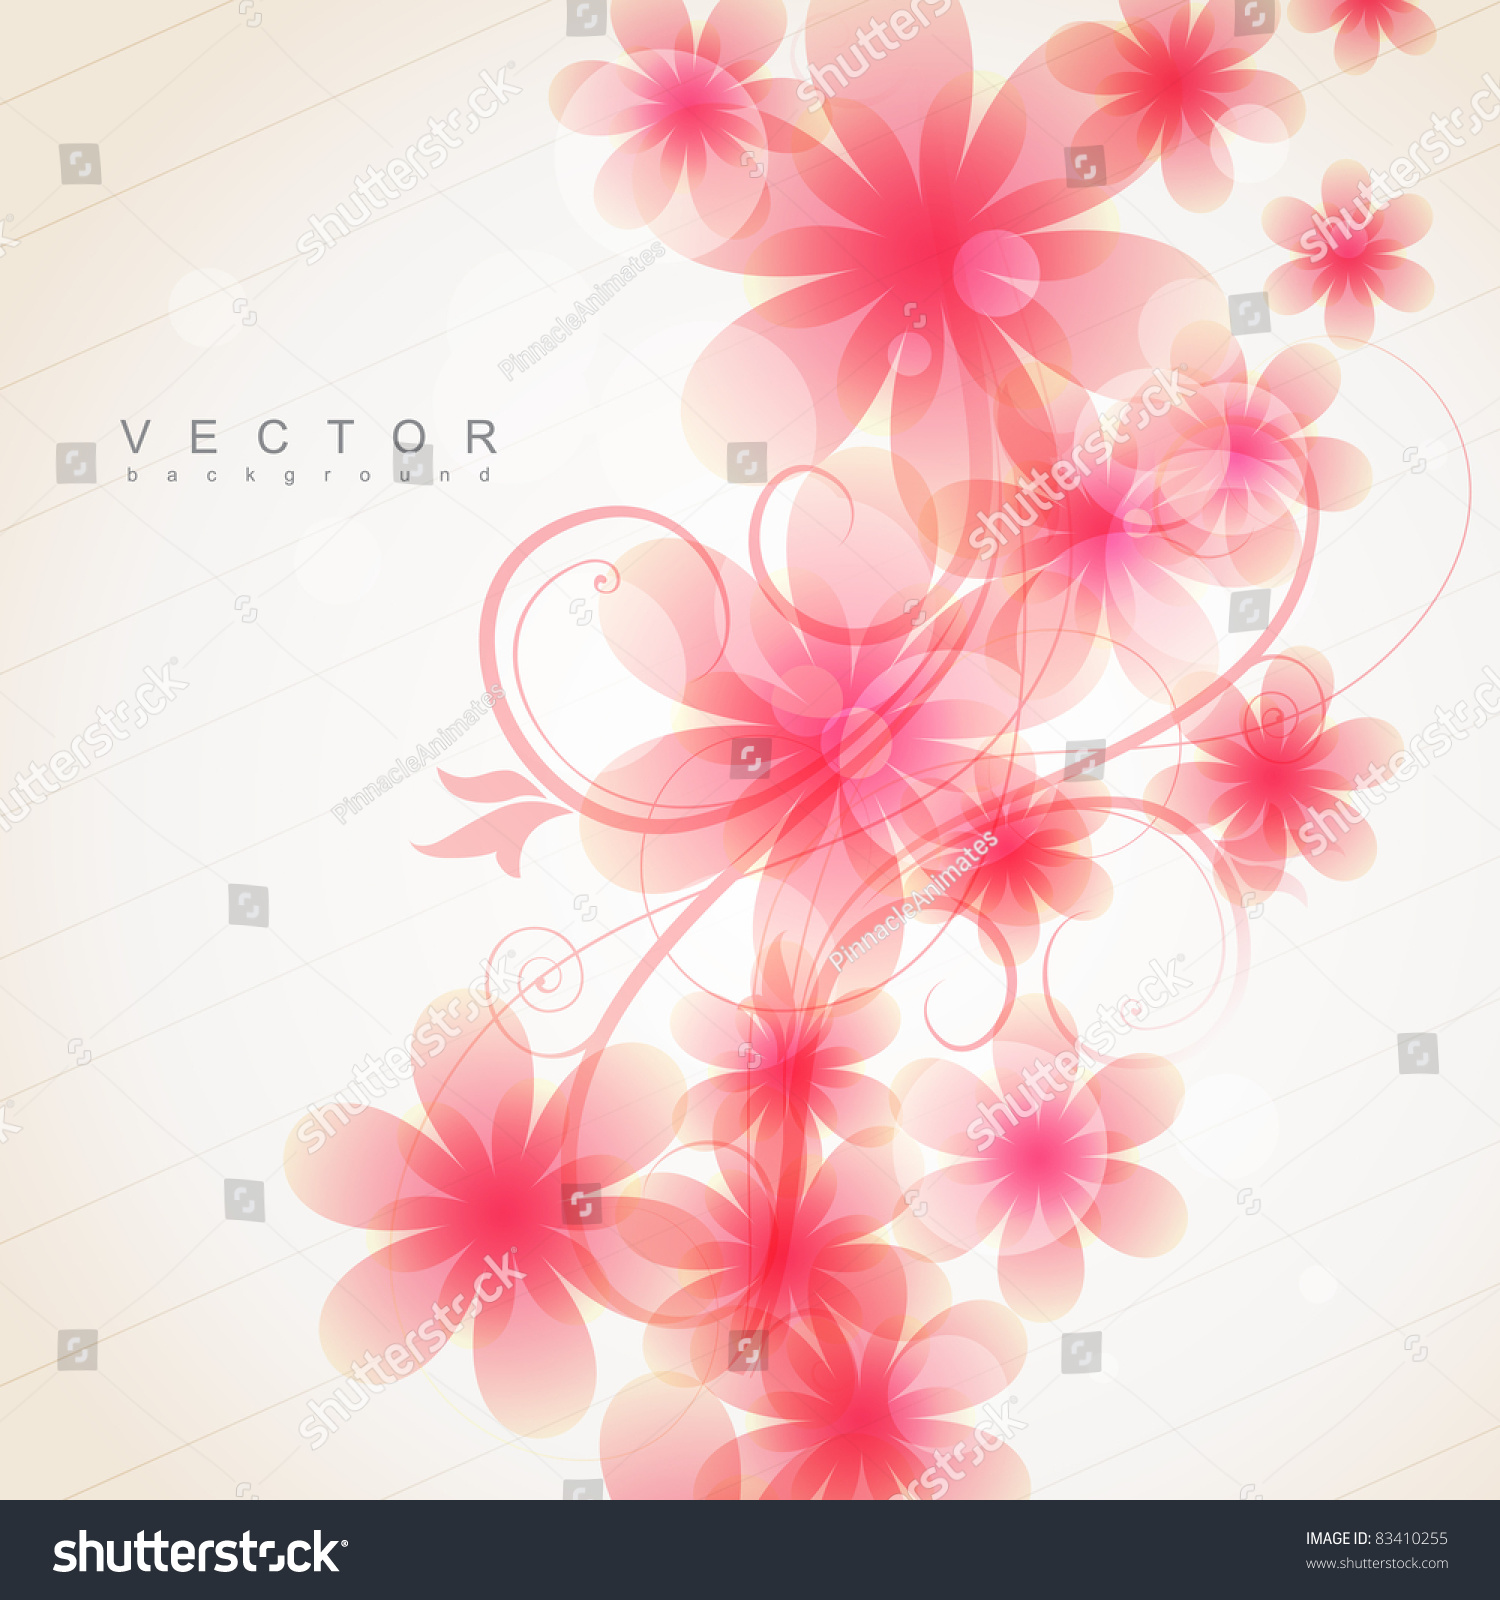 Elegant Soft Pink Color Flowers Vector Stock Vector Royalty Free